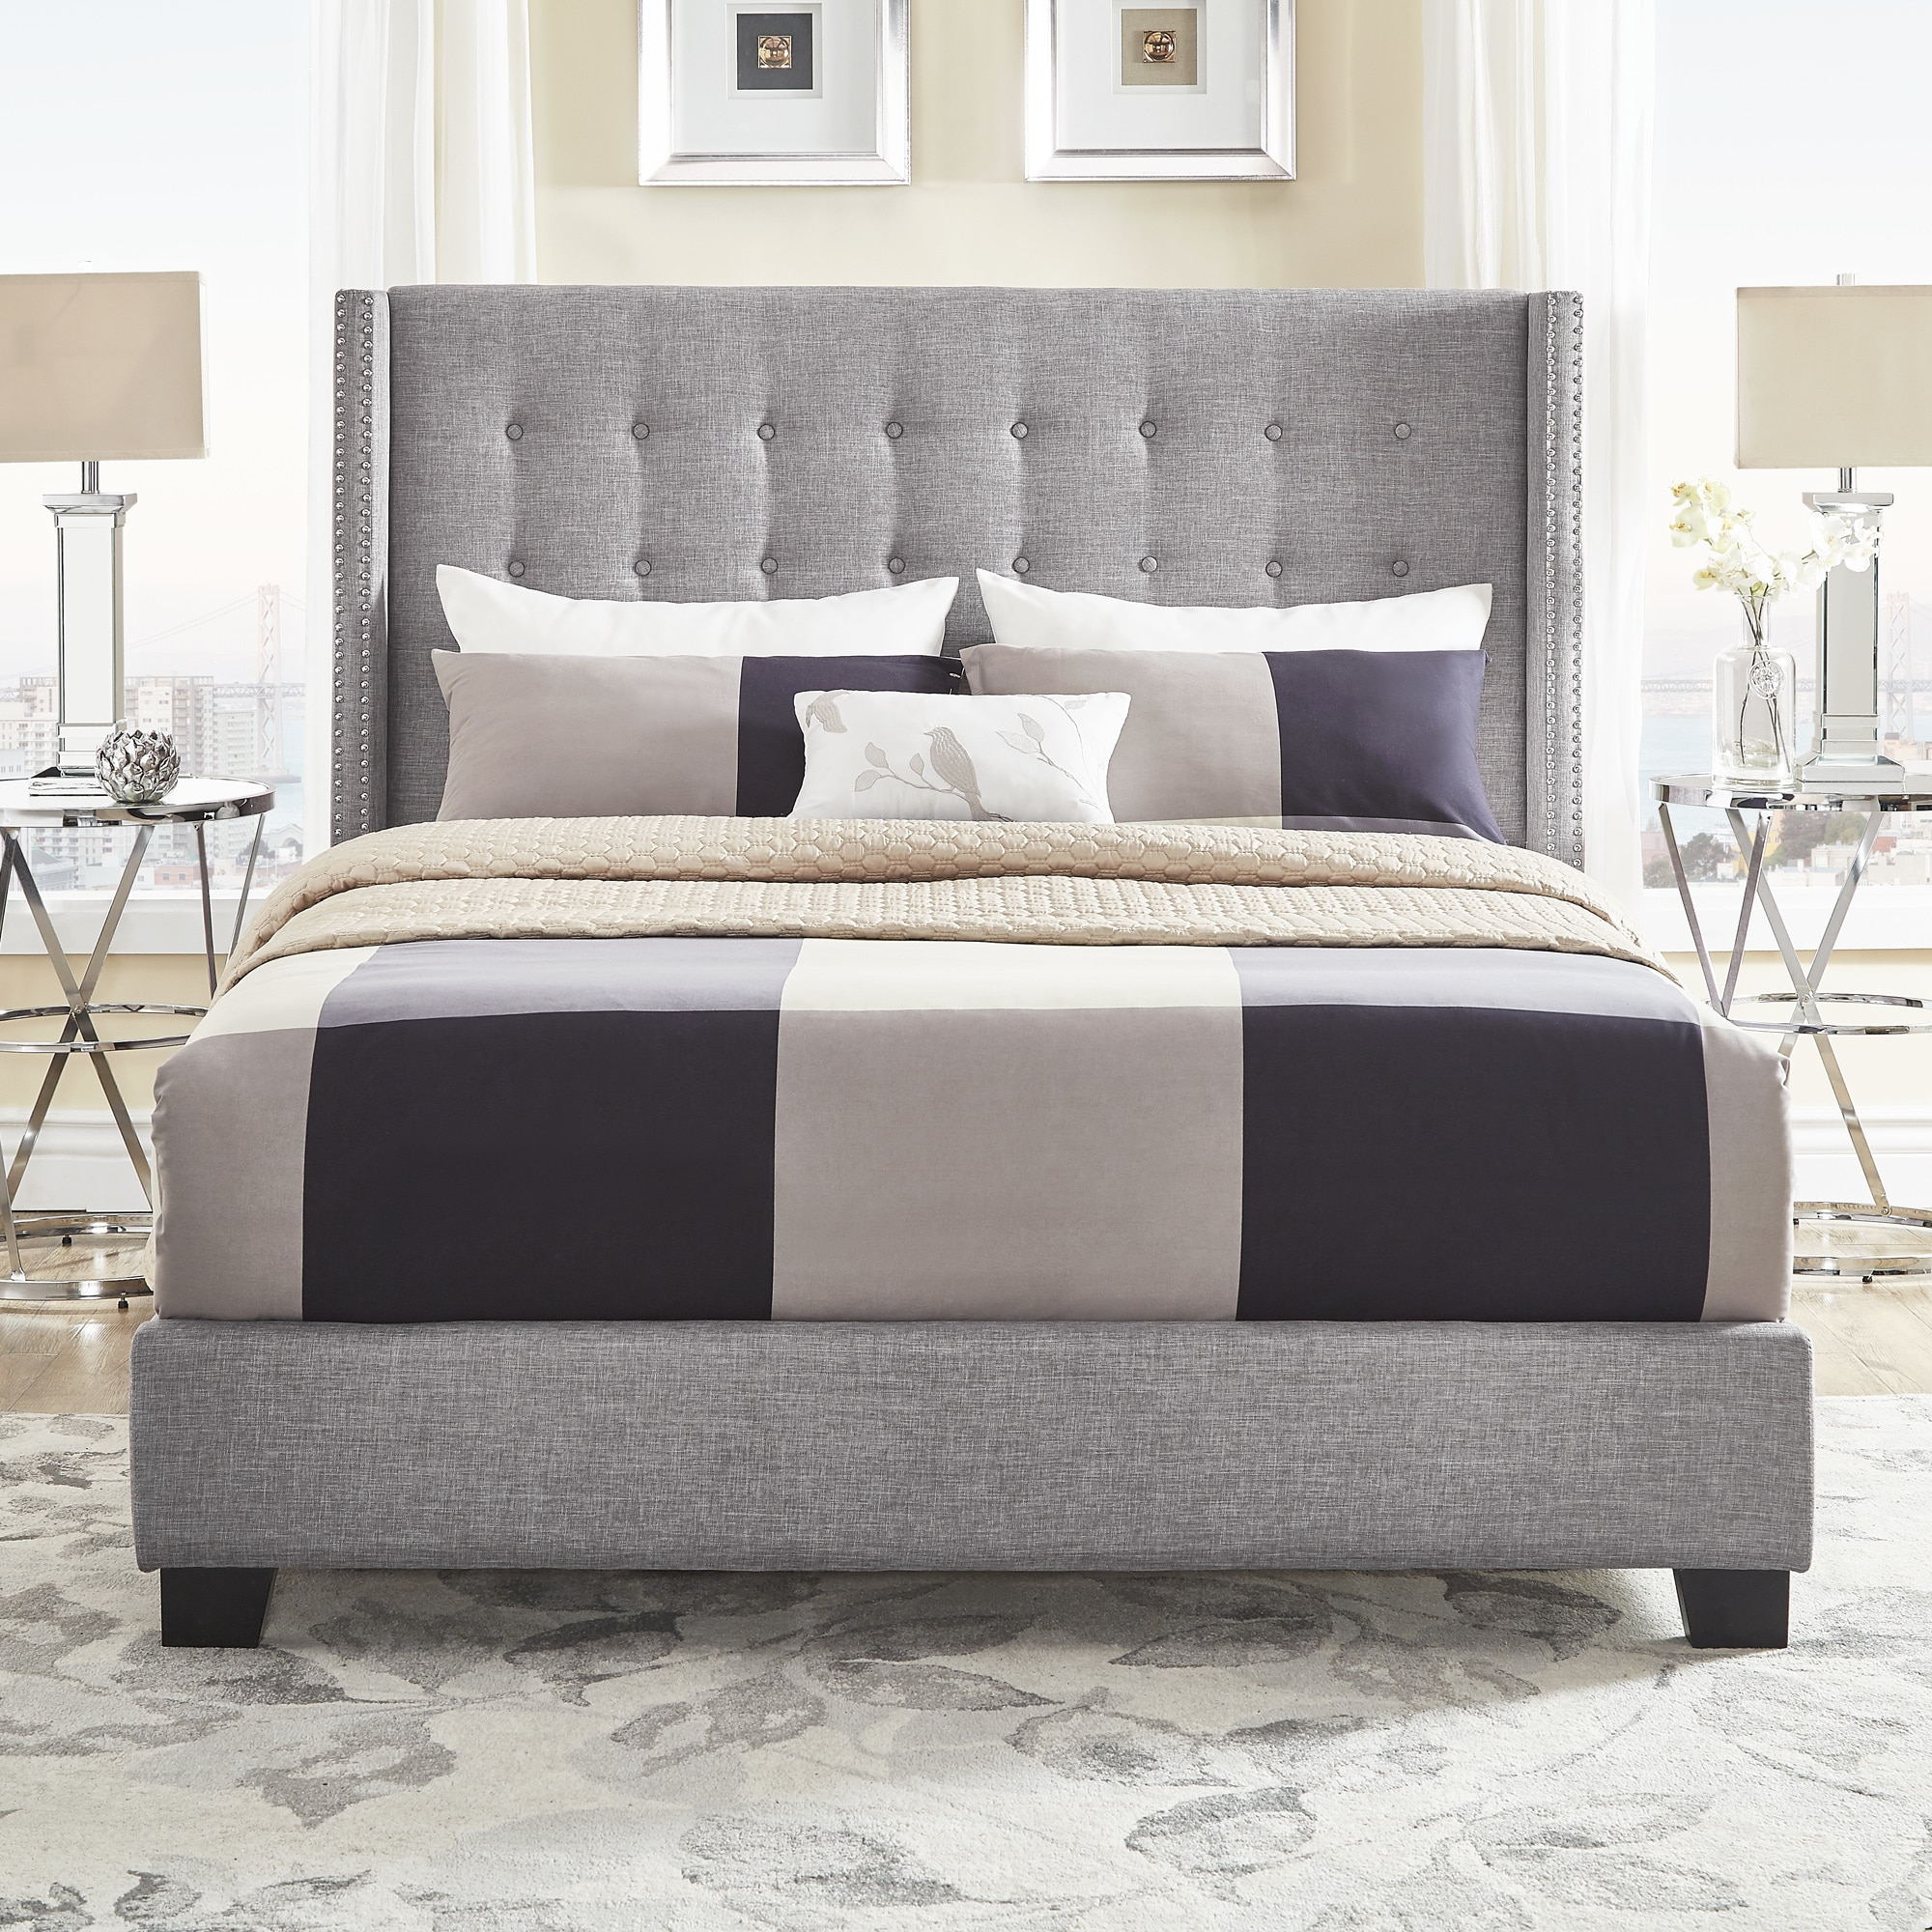 Melina Tufted Grey Linen Wingback Bed by iNSPIRE Q Bold - Free Shipping  Today - Overstock.com - 23980368